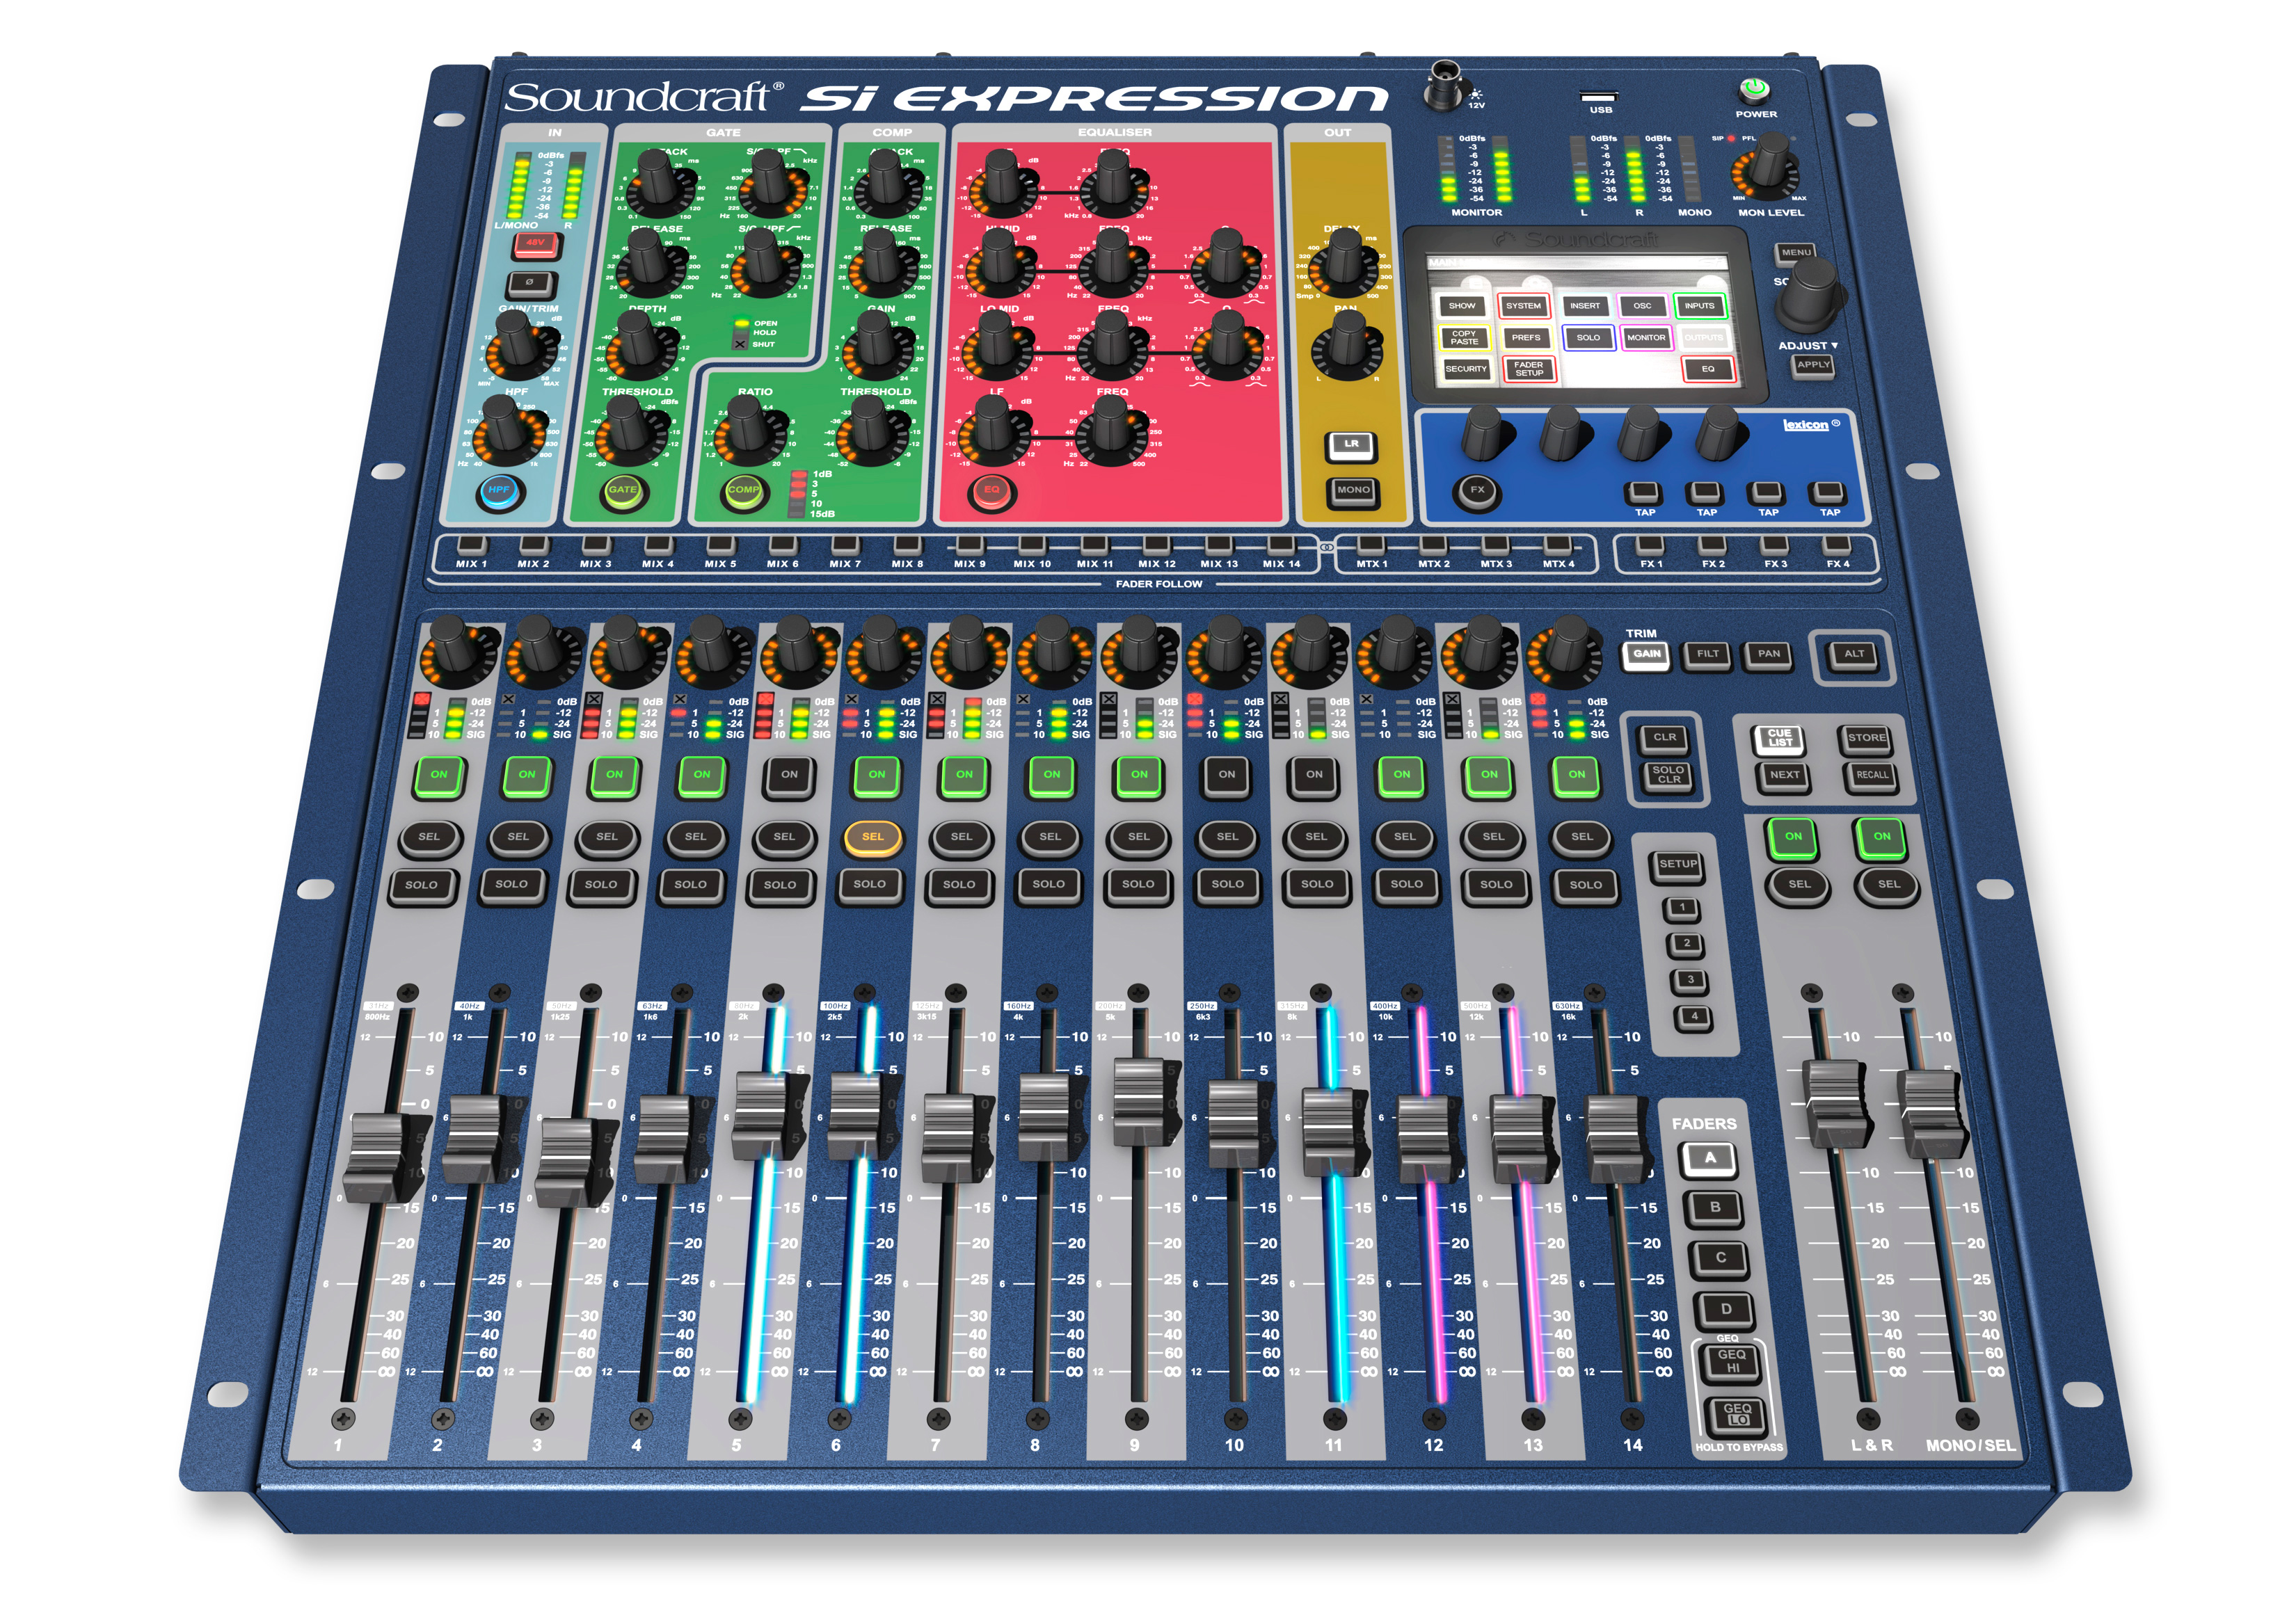 soundcraft si expression 1 16 channel digital mixer. Black Bedroom Furniture Sets. Home Design Ideas